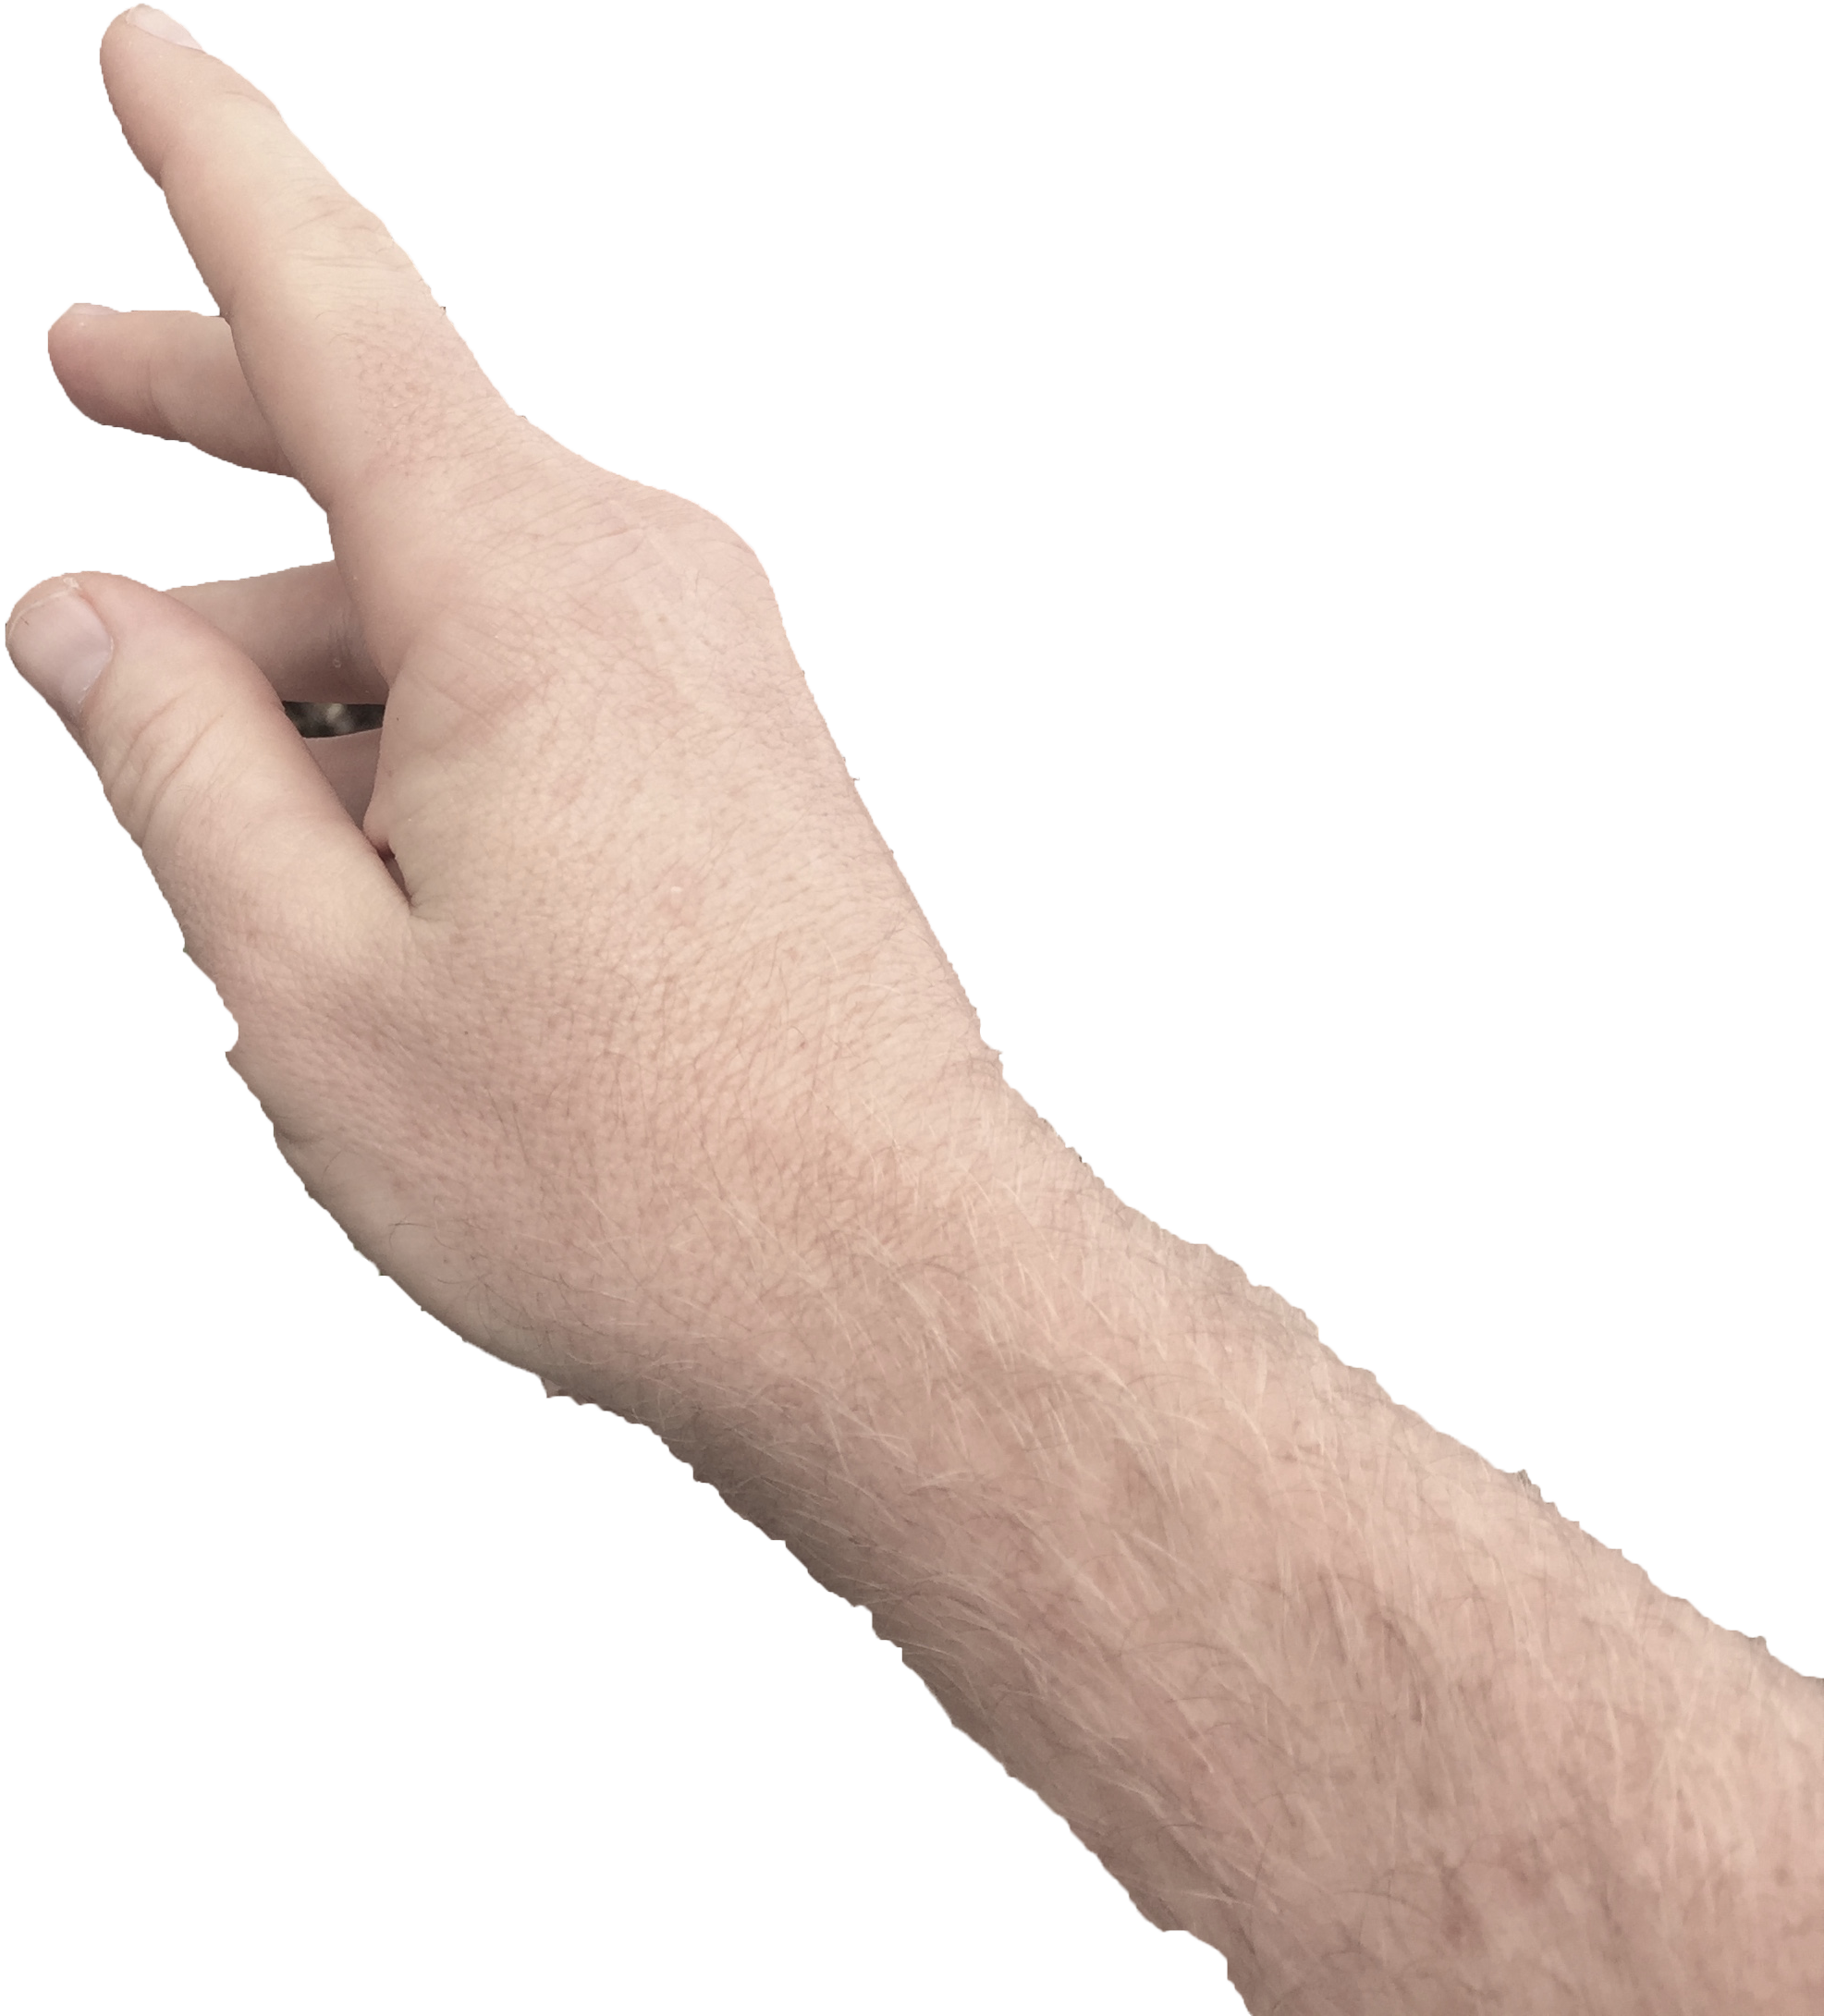 Right Hand Png - File:Right hand for AR.png - Wikimedia Commons